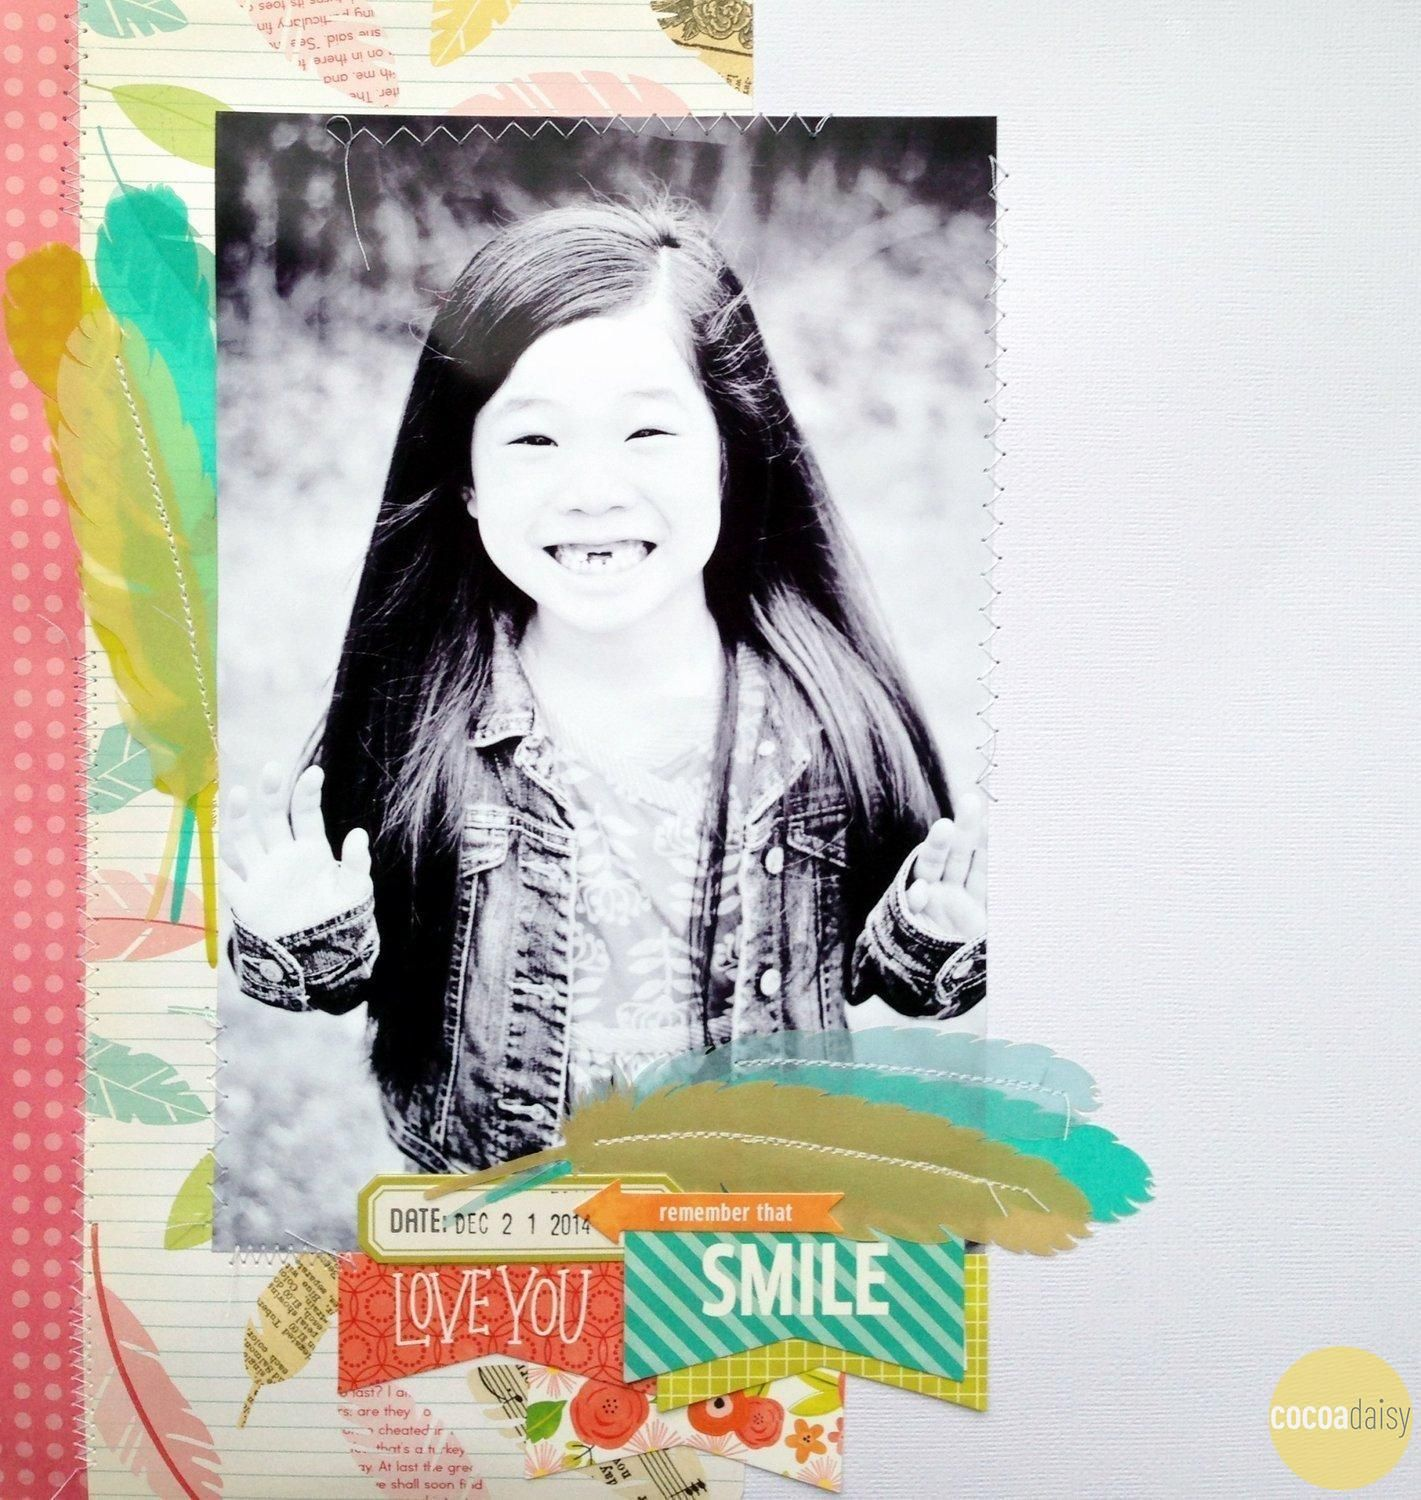 Remember That Smile, by MarthaBonneau January Pajama Time Kit www.cocoadaisy.com #cocoadaisy #cocoadaisykits #scrapbooking